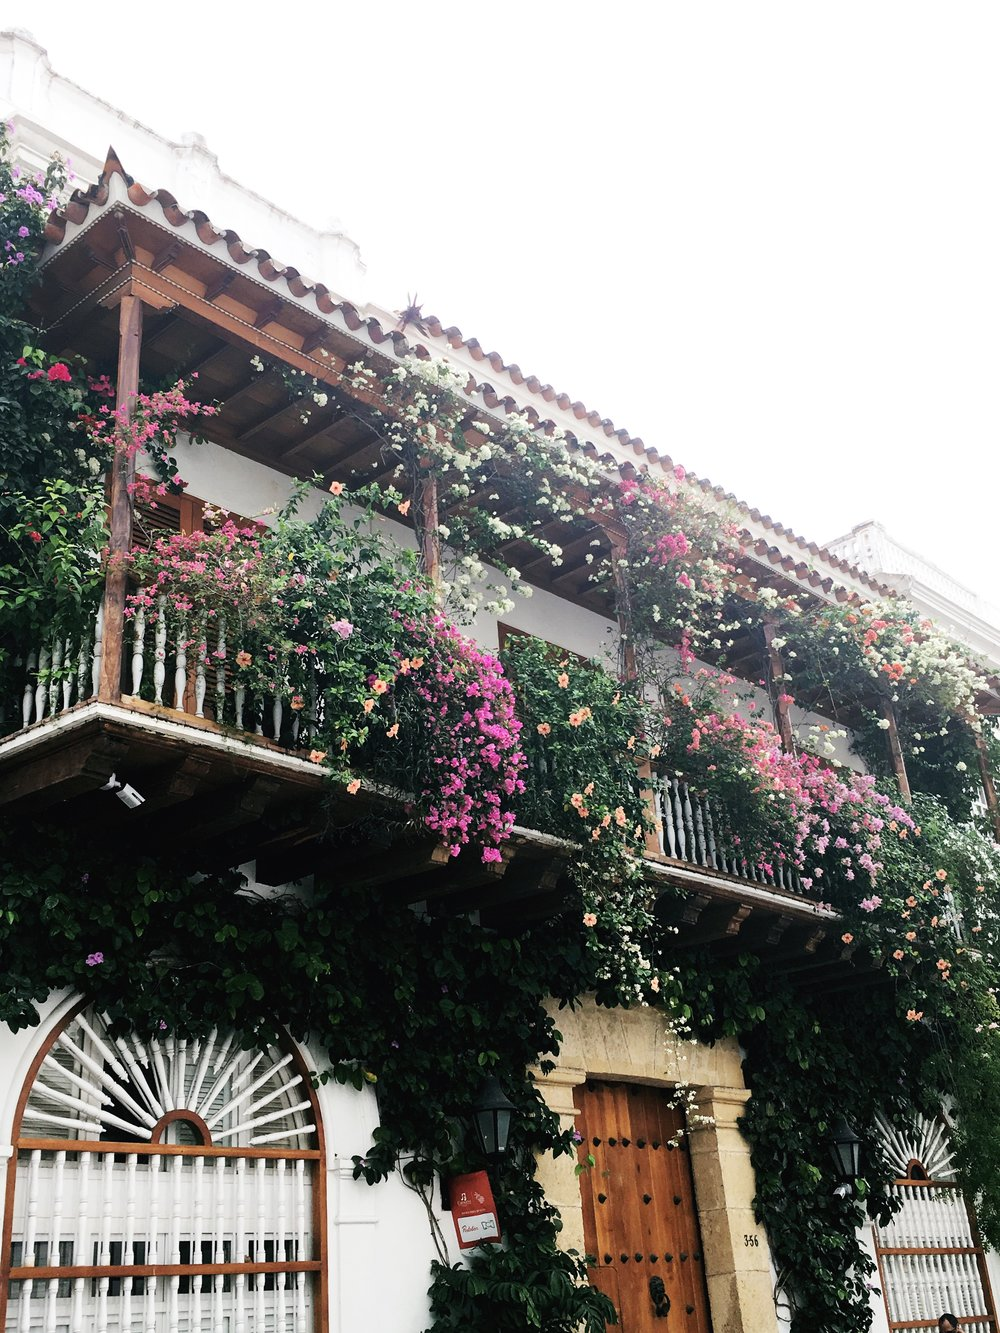 Balconies overflowing in the old town